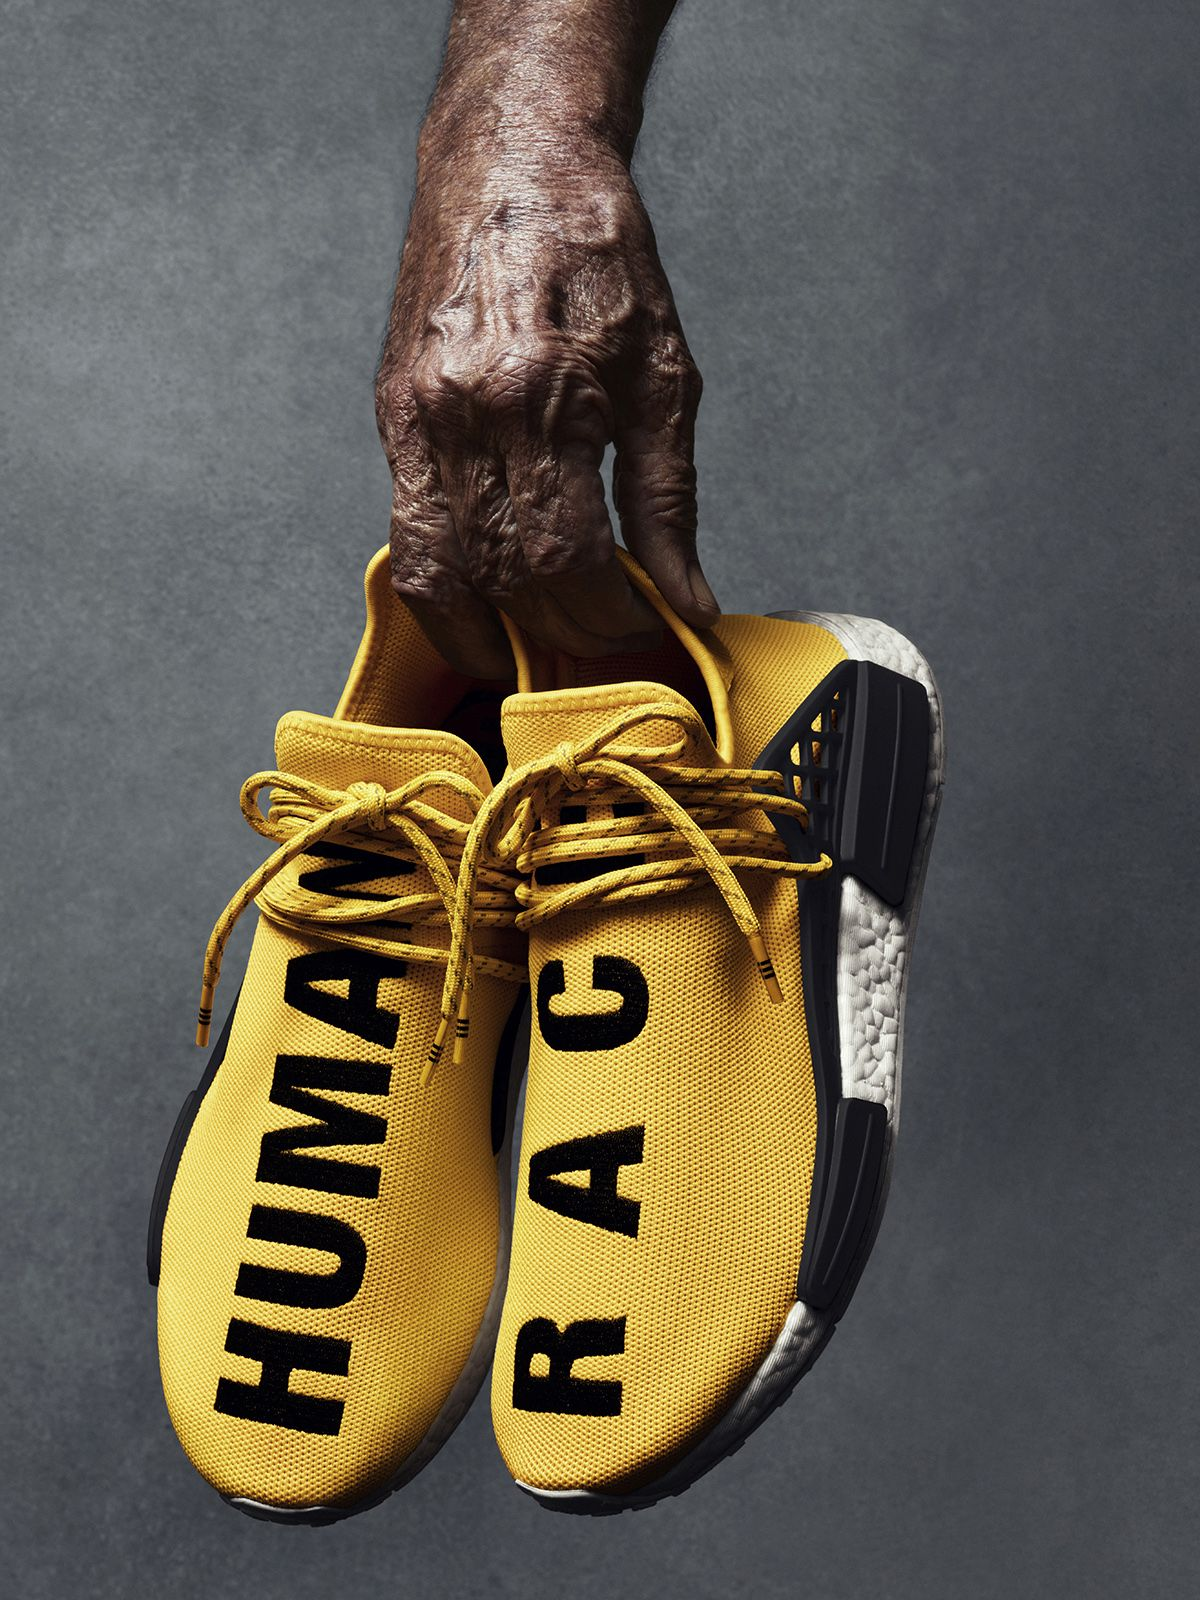 wholesale dealer 35ebc d9631 Pharrell Williams x adidas NMD  Human Race  Releases 22.07.16 - EU Kicks   Sneaker Magazine